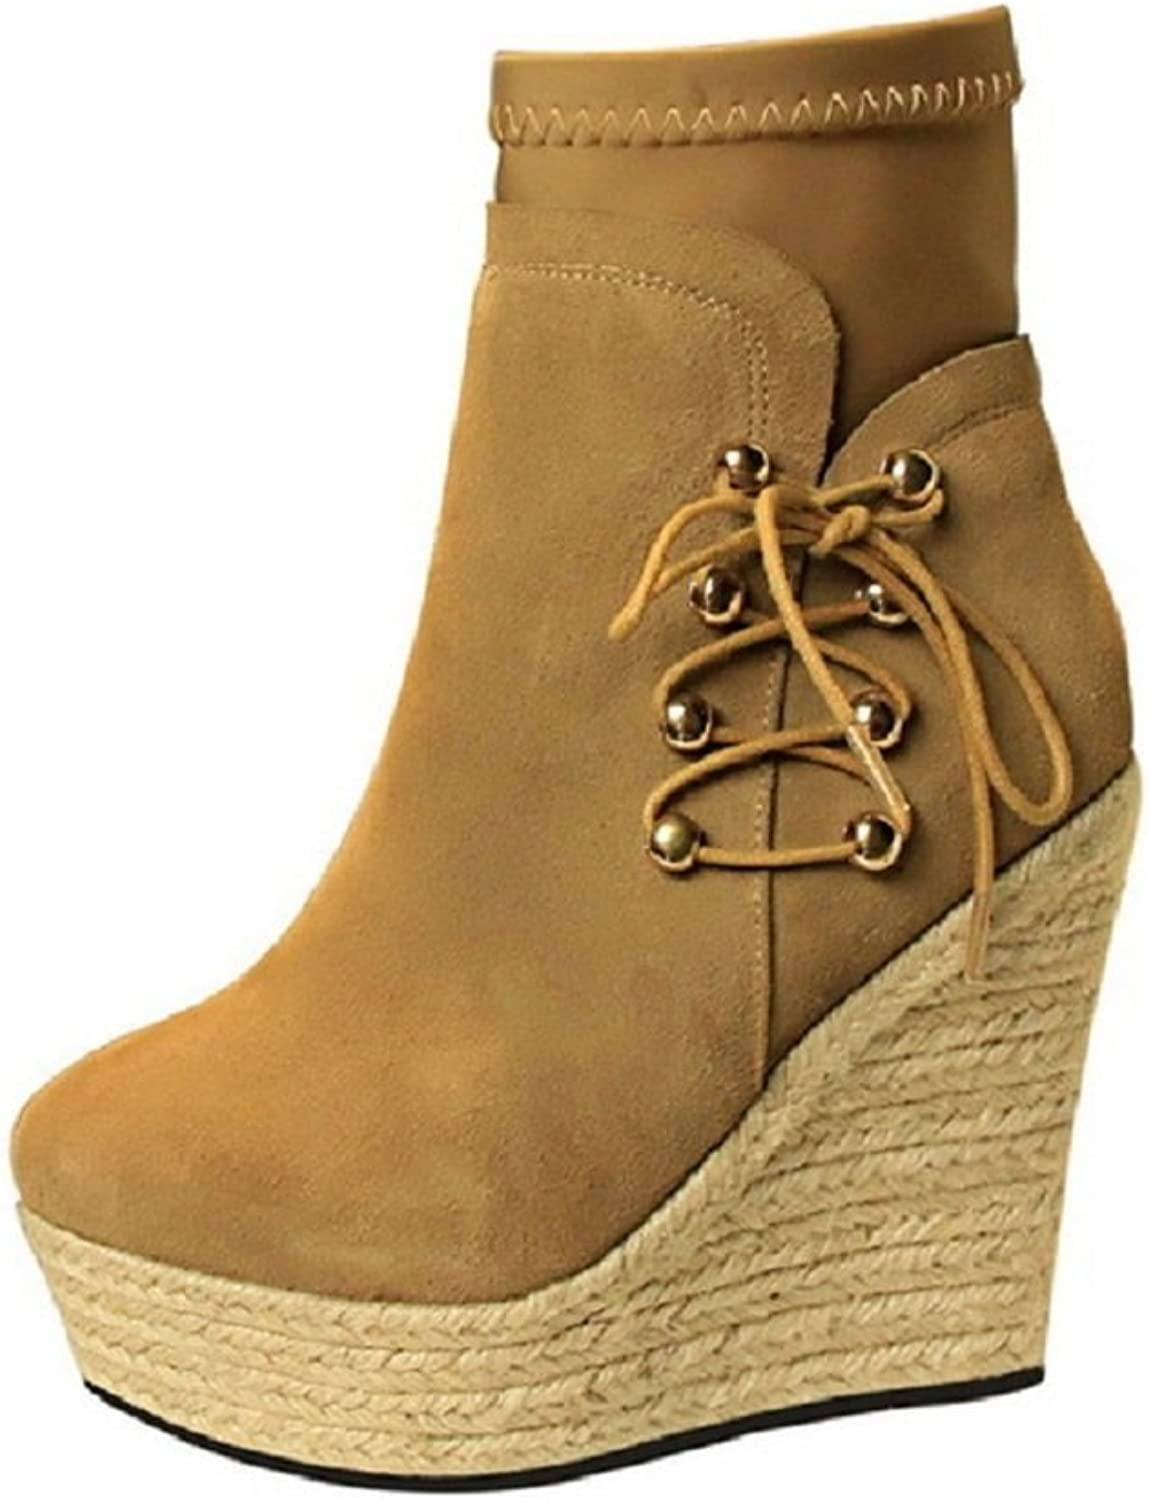 Tianrui Crown Women's Women's Espadrille Platform Wedge Short Boot Platform Ankle Boot